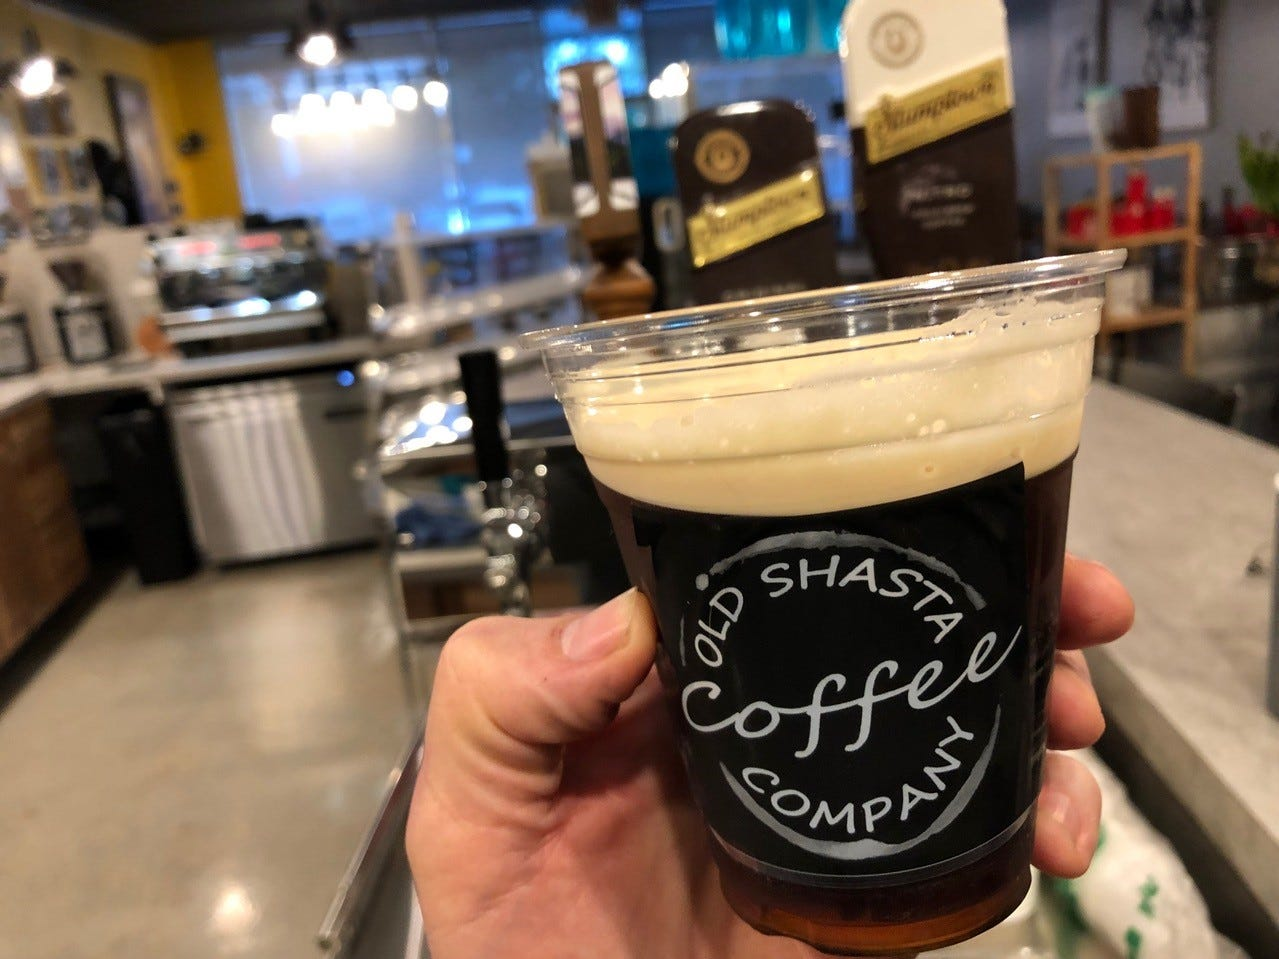 A heady glass of Stumptown nitro cold brew coffee at Old Shasta Coffee Company.